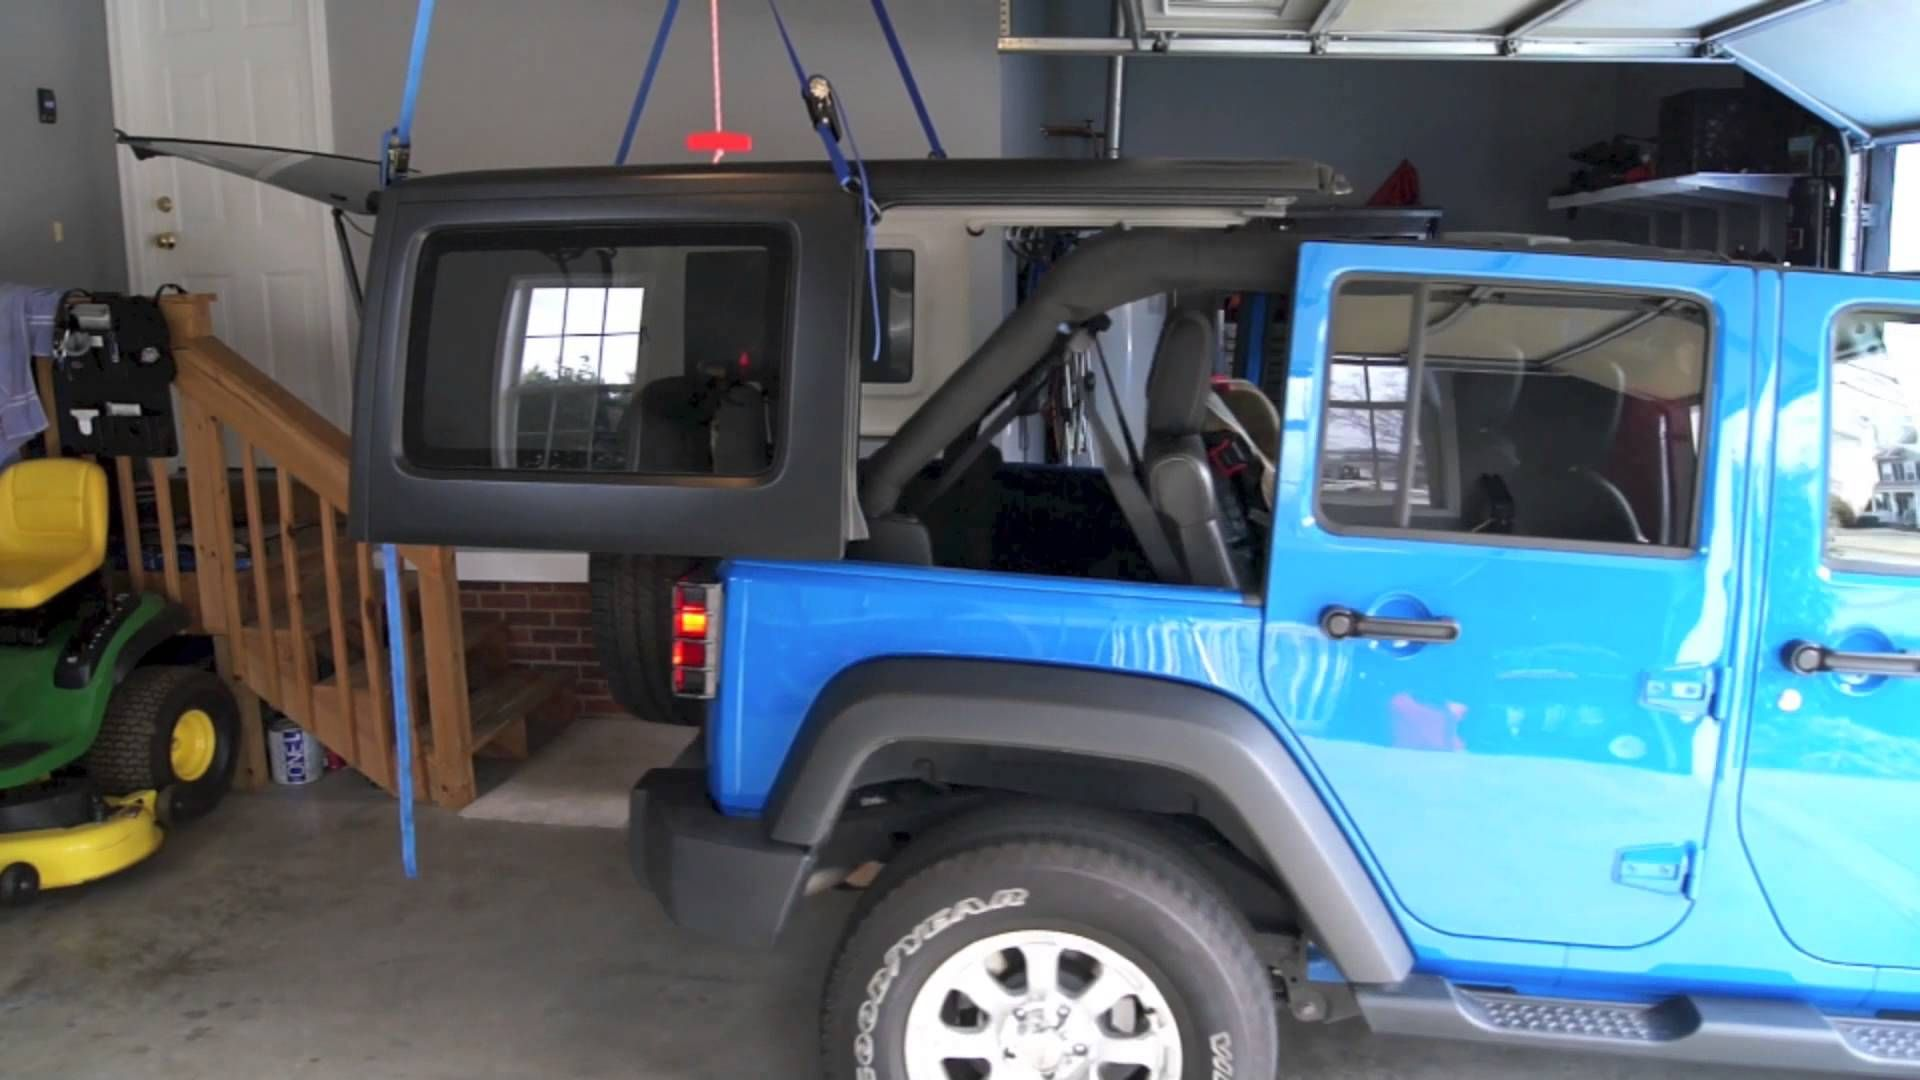 Diy Jeep Hoist Video Shows How To Use 4 Straps And